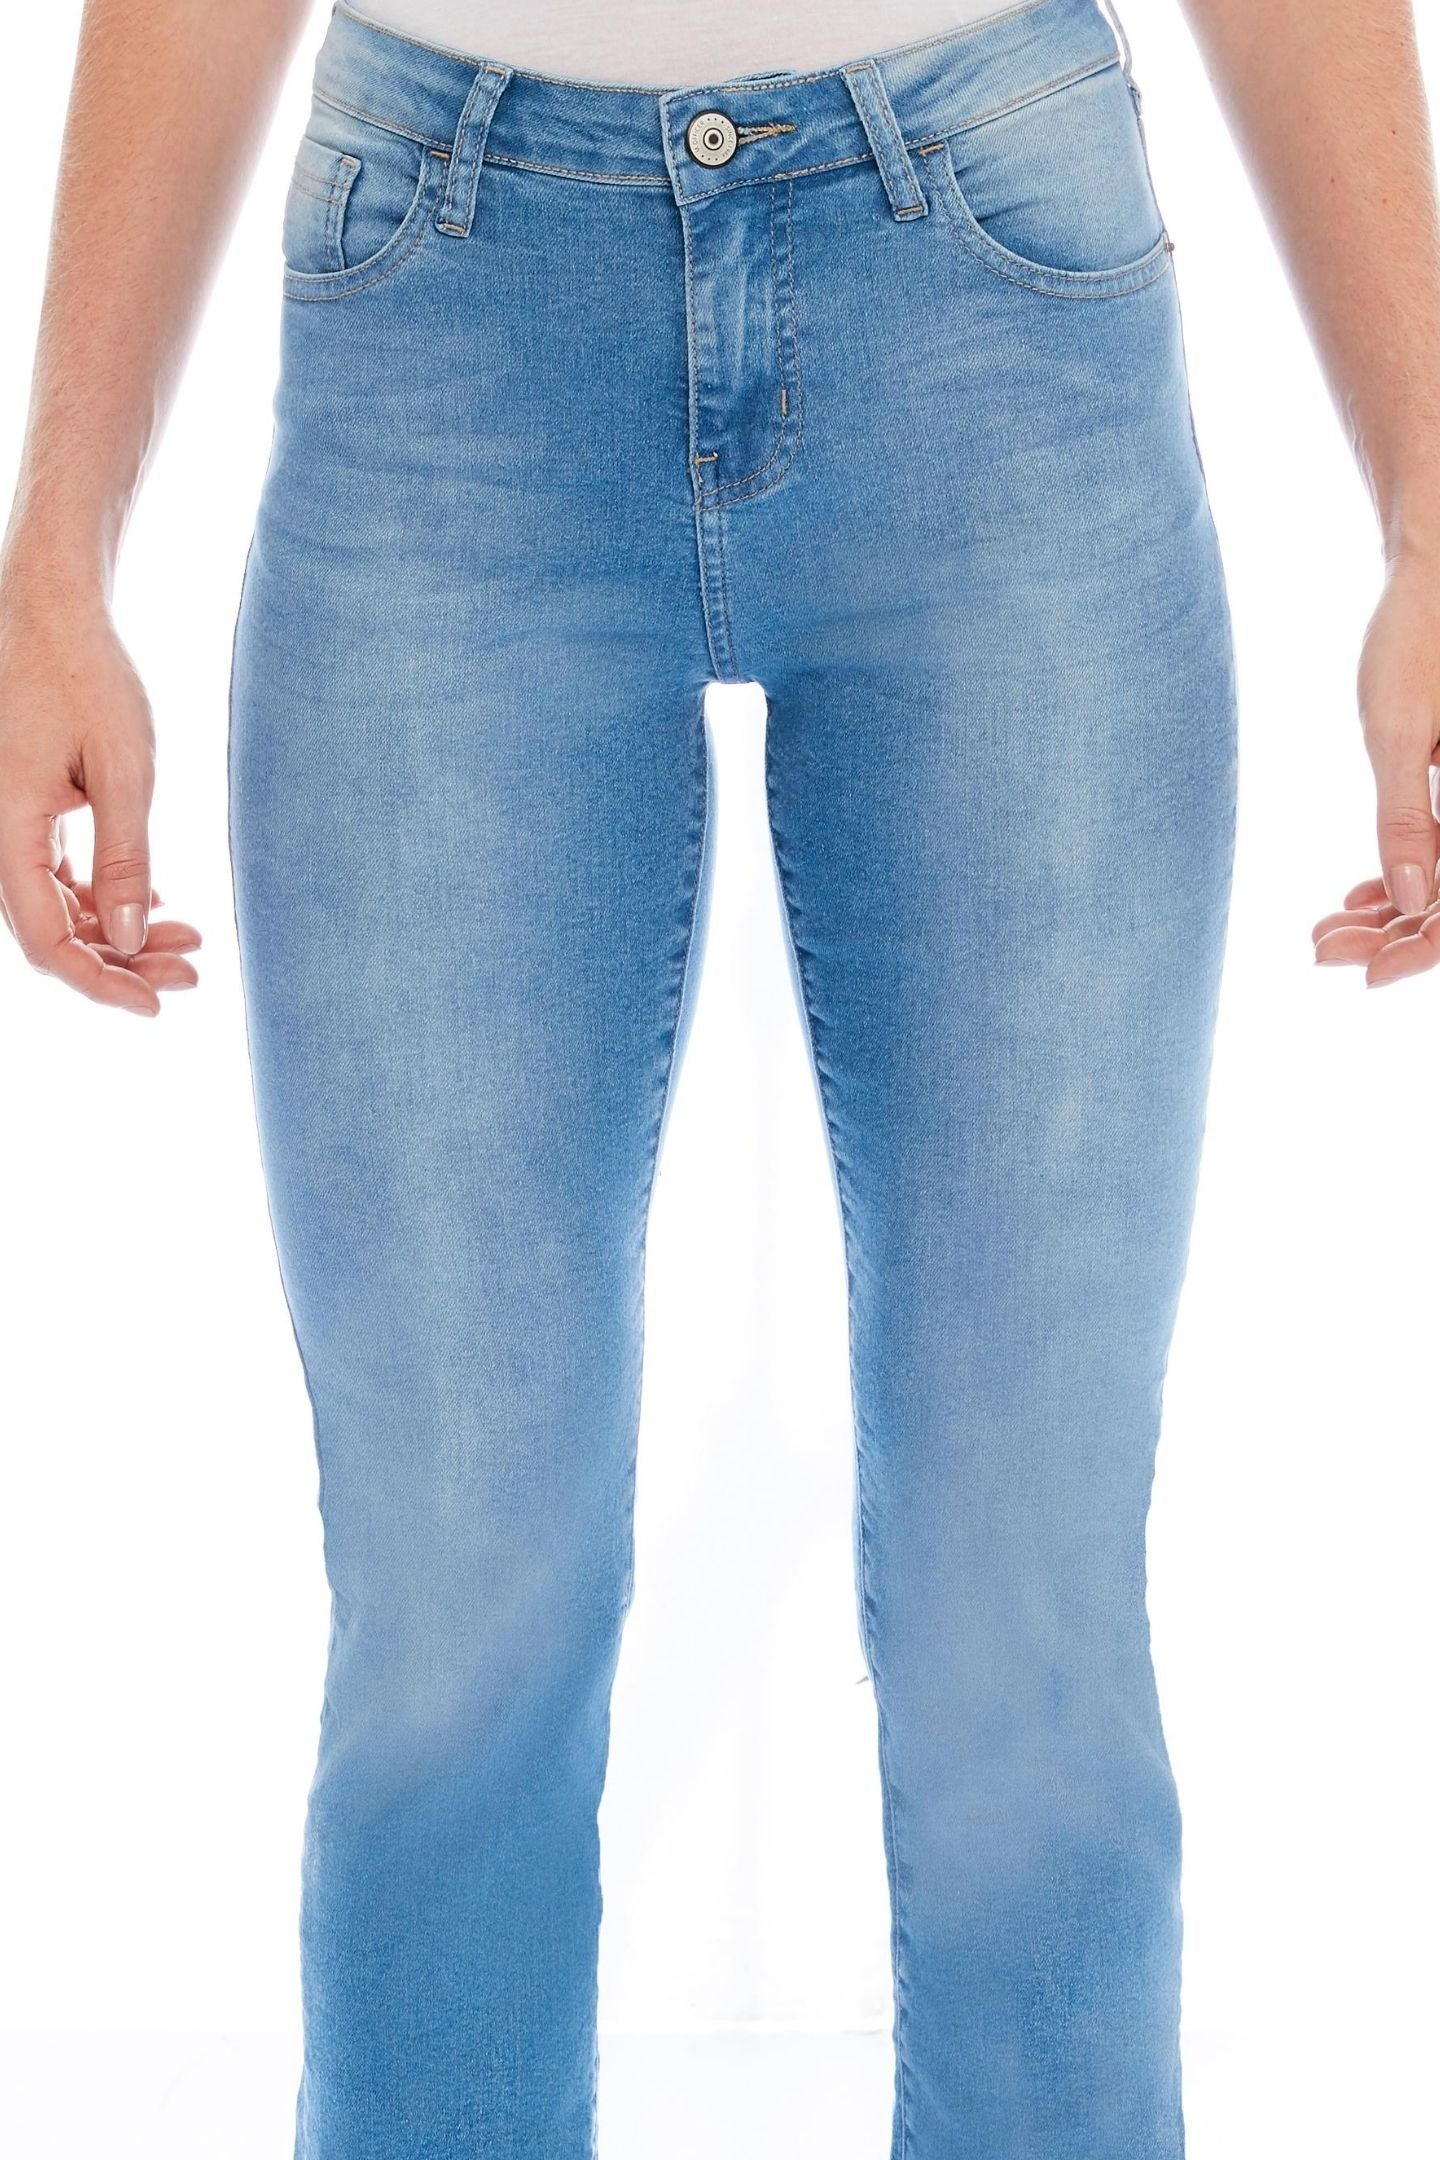 CALÇA JEANS RETA C3 LIGHT BLUE